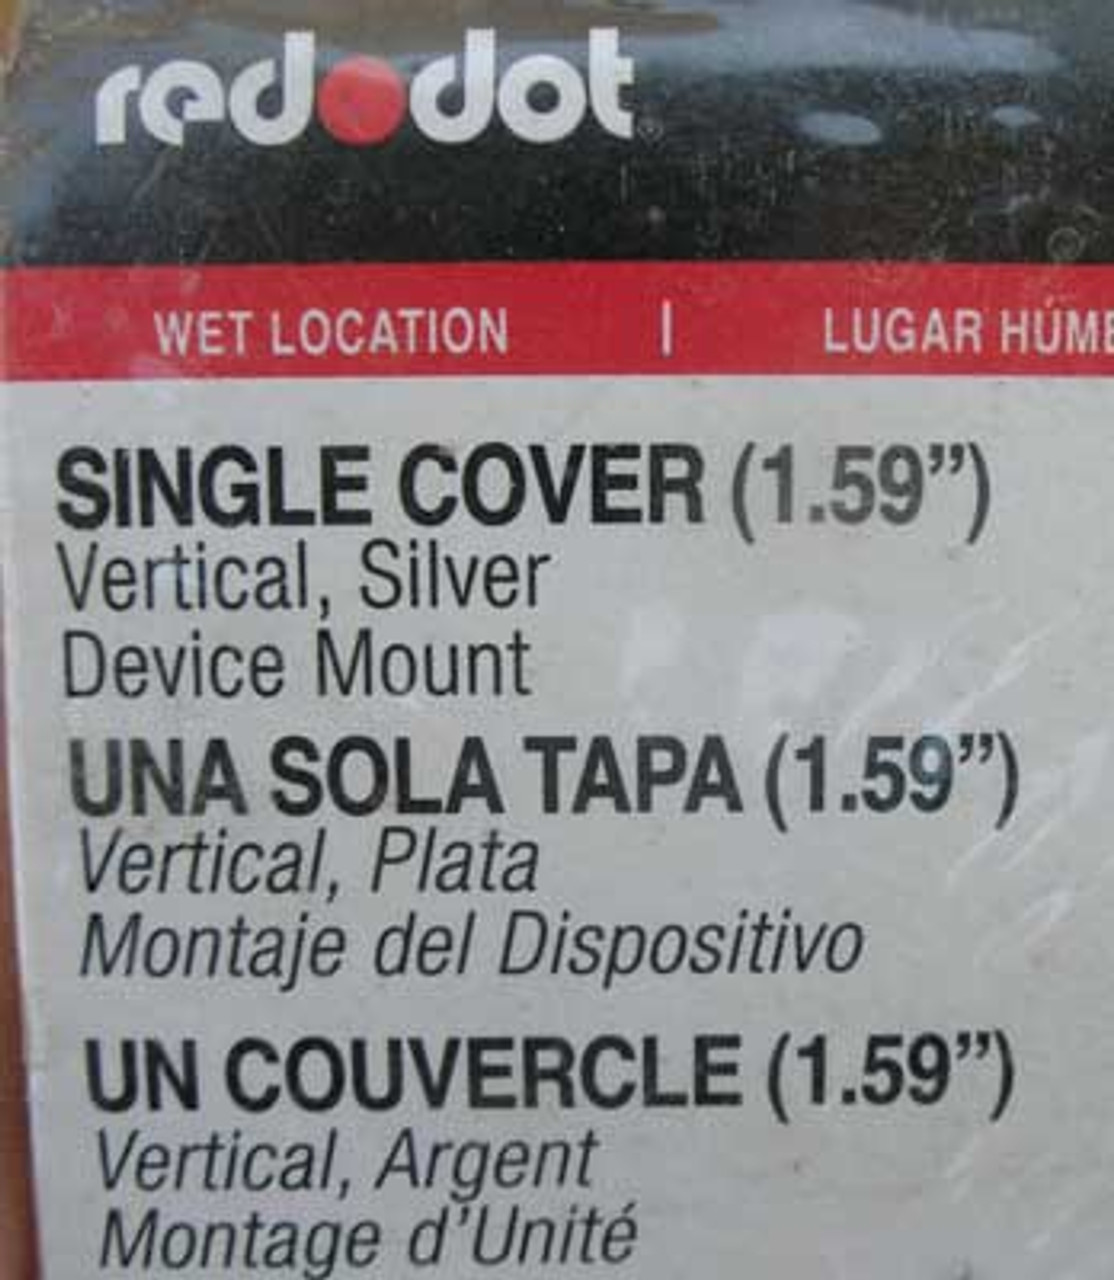 Thomas & Betts Red Dot CCSV Verticle Single Cover - New